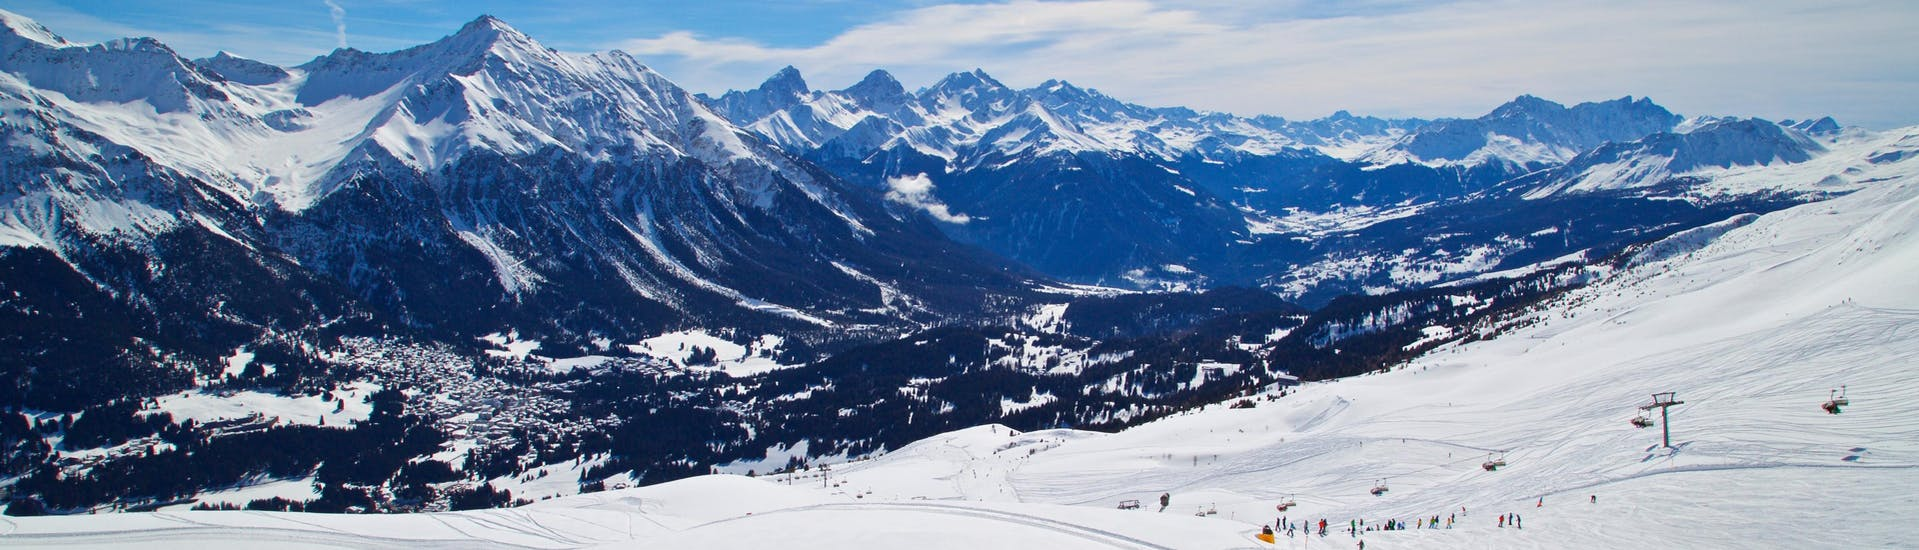 A panoramic view of the entire valley surrounding the popular swiss ski resort of Lenzerheide, where visitors can book ski lessons with one of the local ski schools.